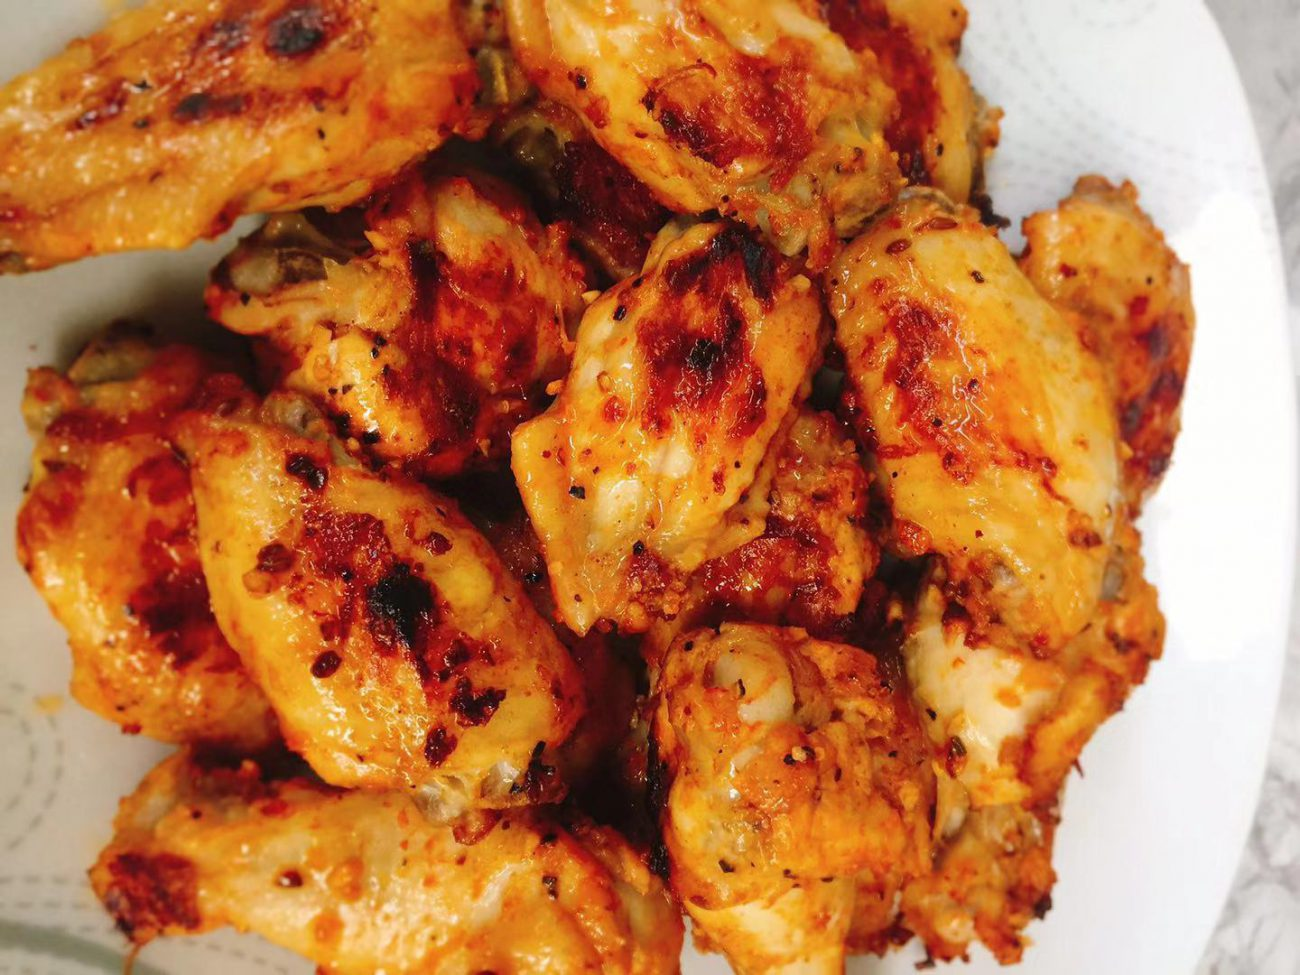 AirGO air fried 22 chicken wings in 19 minutes with crispy skin